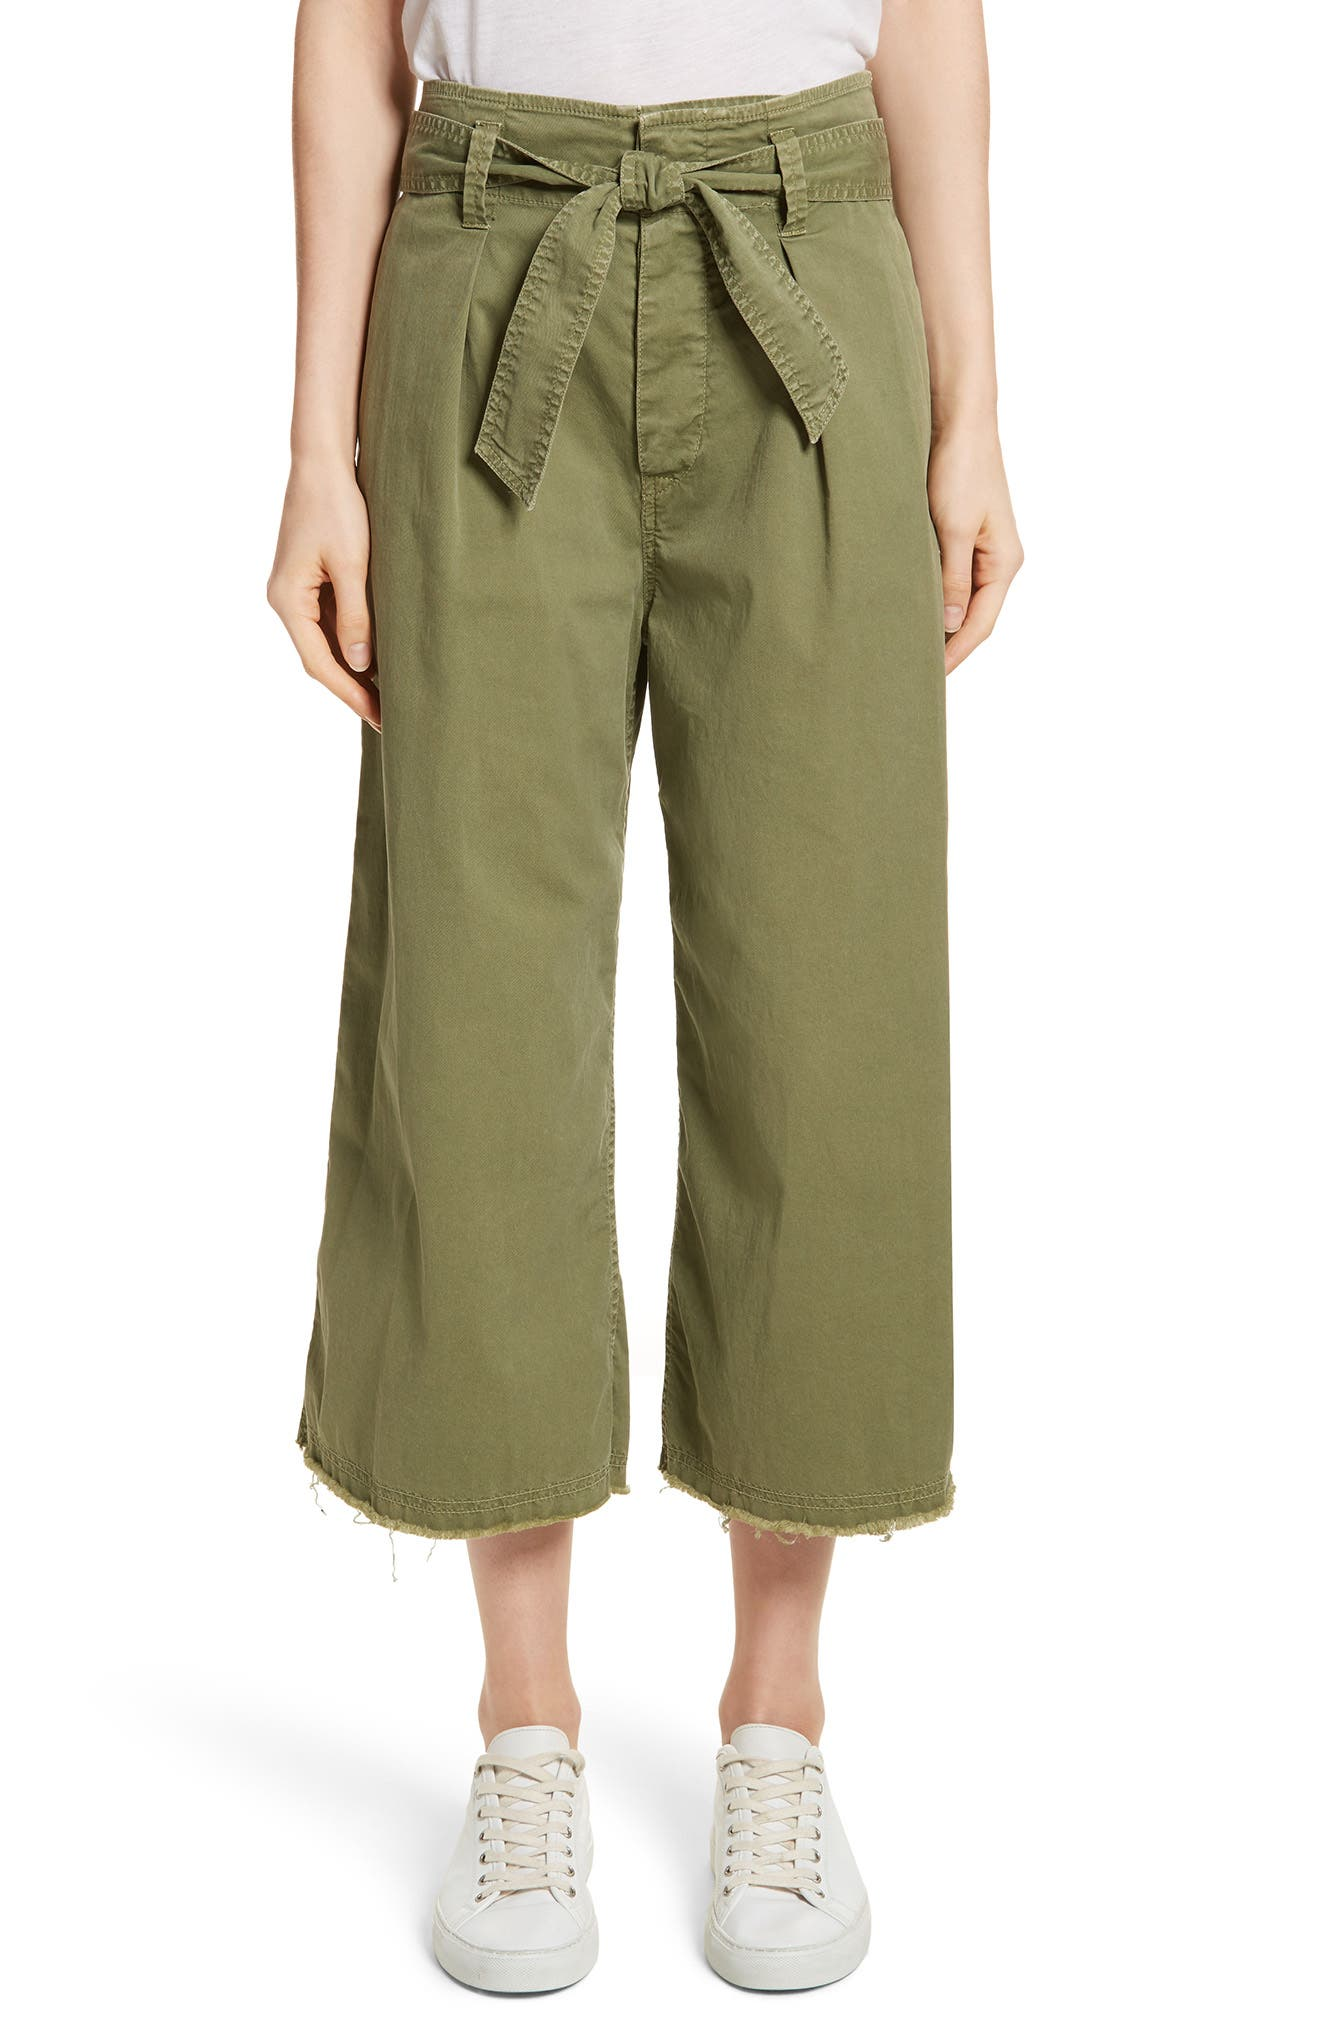 Ellie Drop Rise Culottes,                         Main,                         color, Army Green